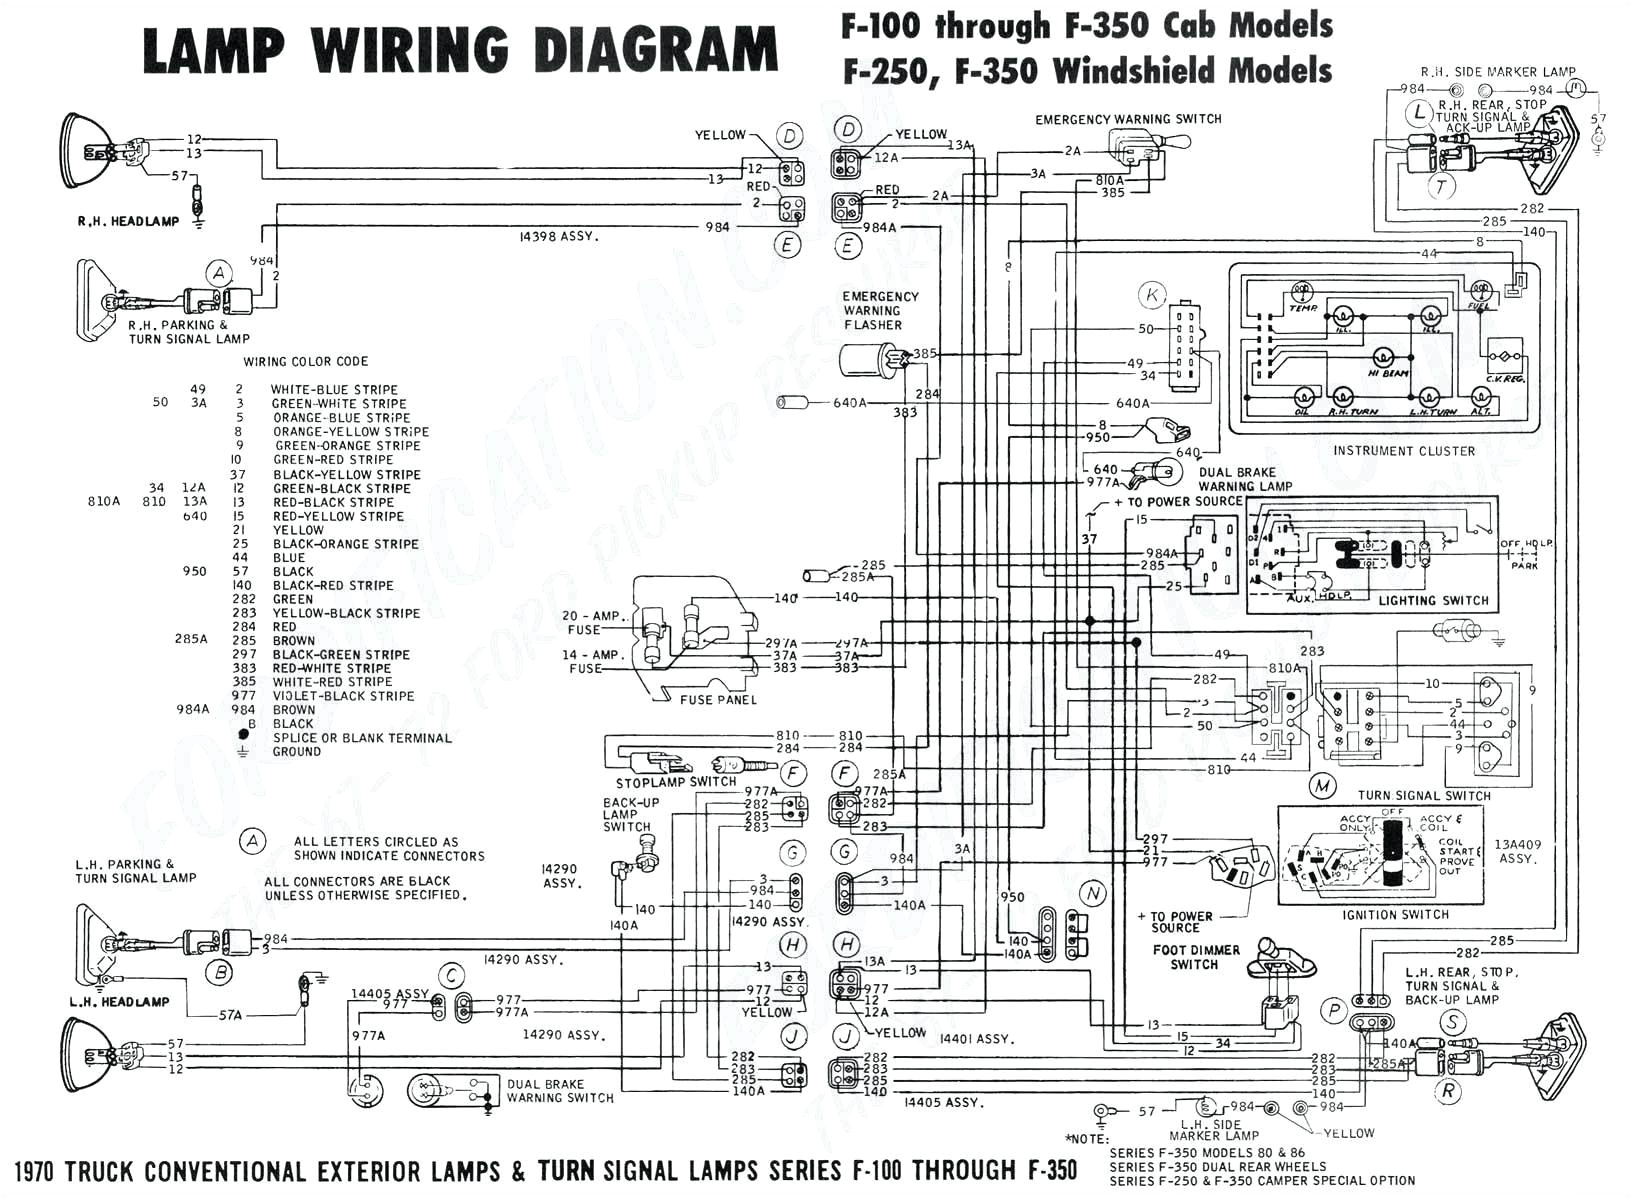 toyota camry etc s electrical wiring diagram wiring diagram note wiring diagram toyota camry lights fog electrical free download